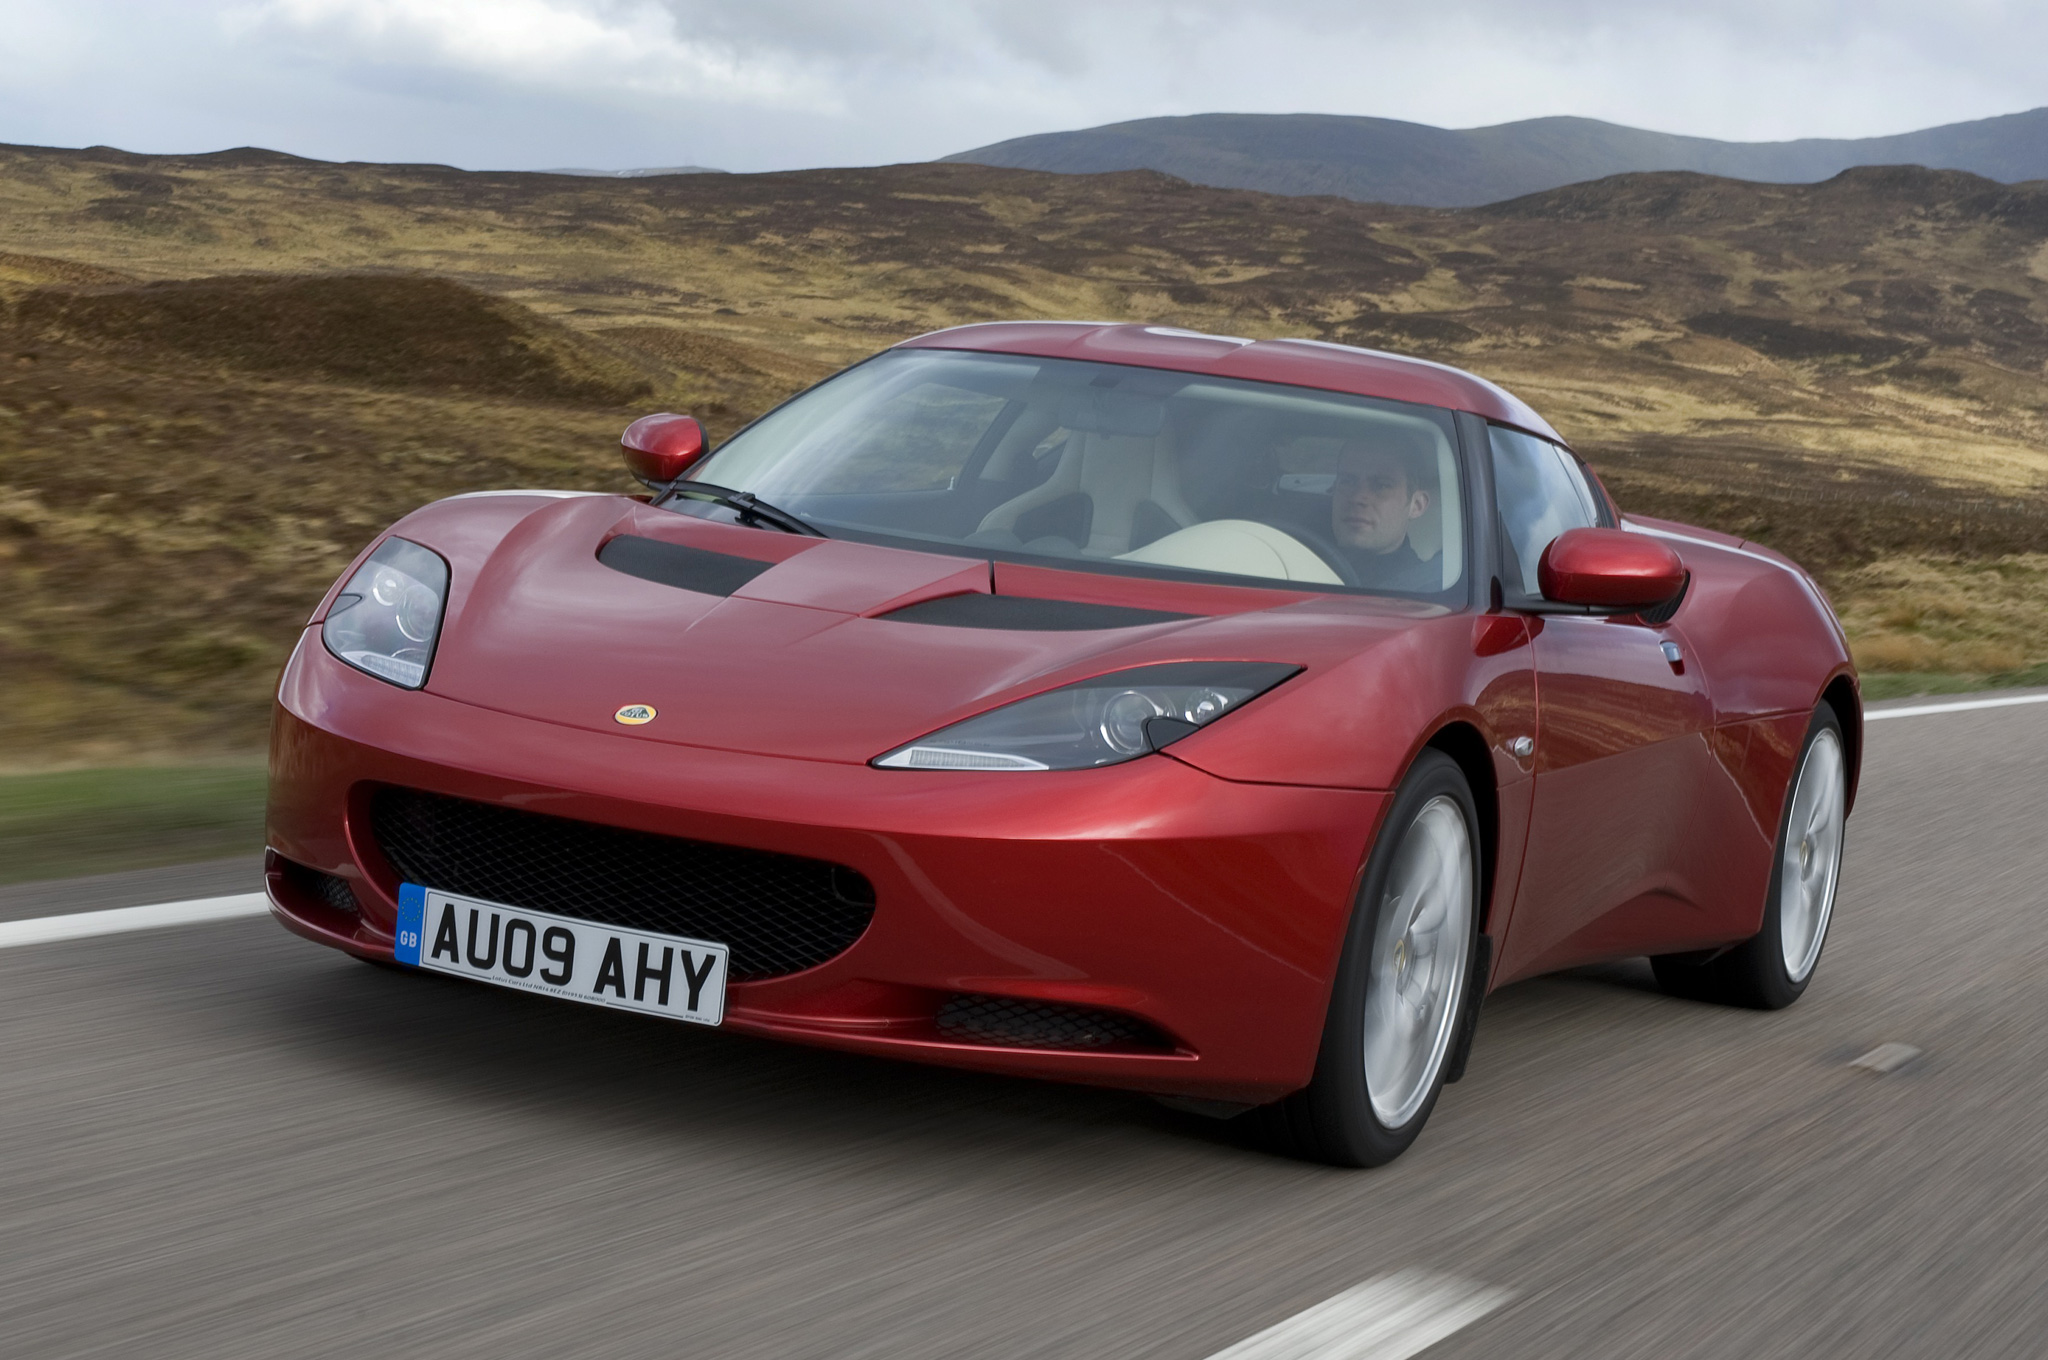 Lotus Lives: Plans Call for Variants of Existing Cars, Not New Product